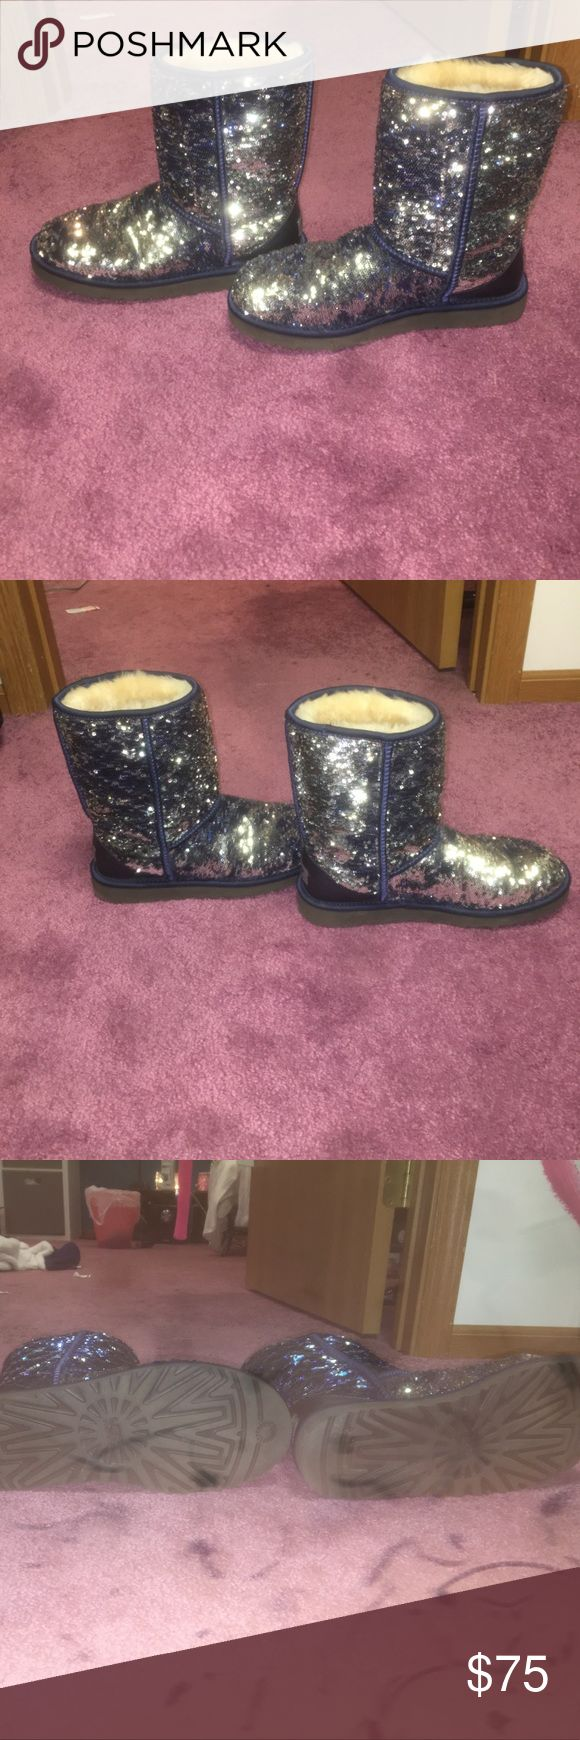 UGG Classic Short Sparkles Genuine Shearling Lined They can be blue or silver. Worn a couple times. In perfect condition. Have original box. UGG Shoes